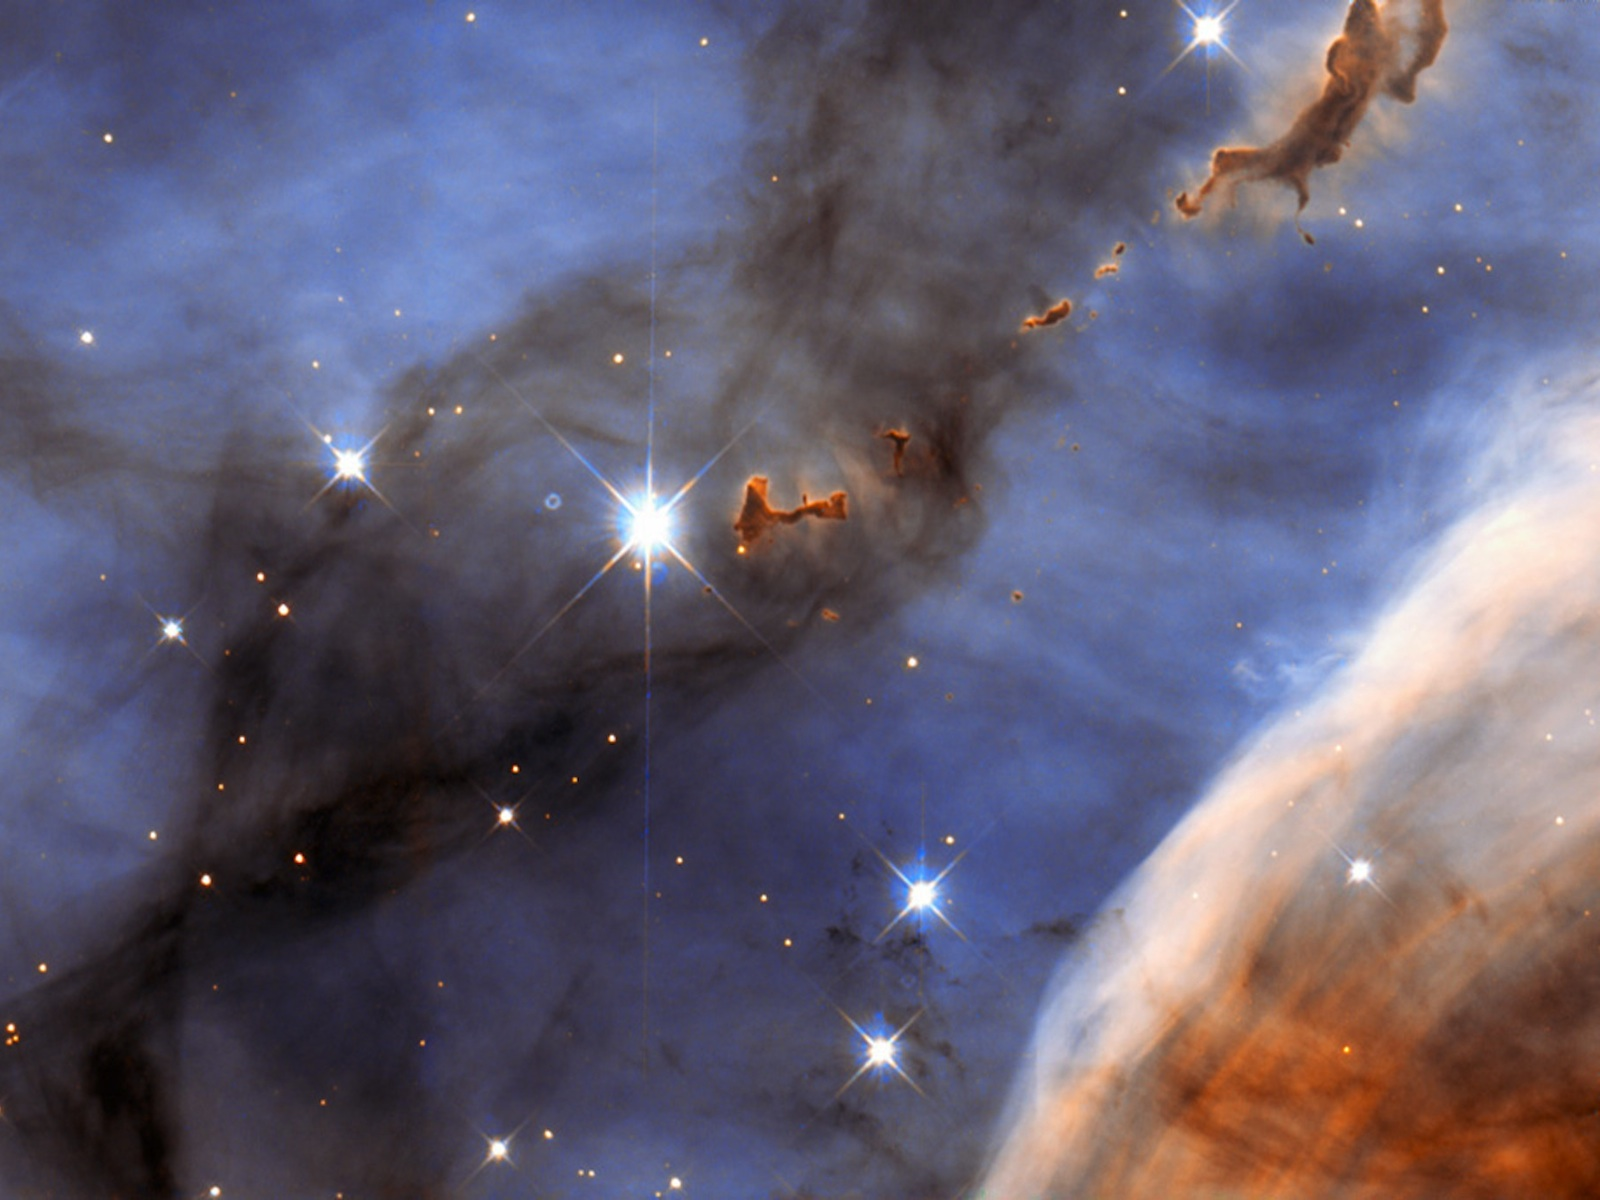 Evaporating Blobs of the Carina Nebula